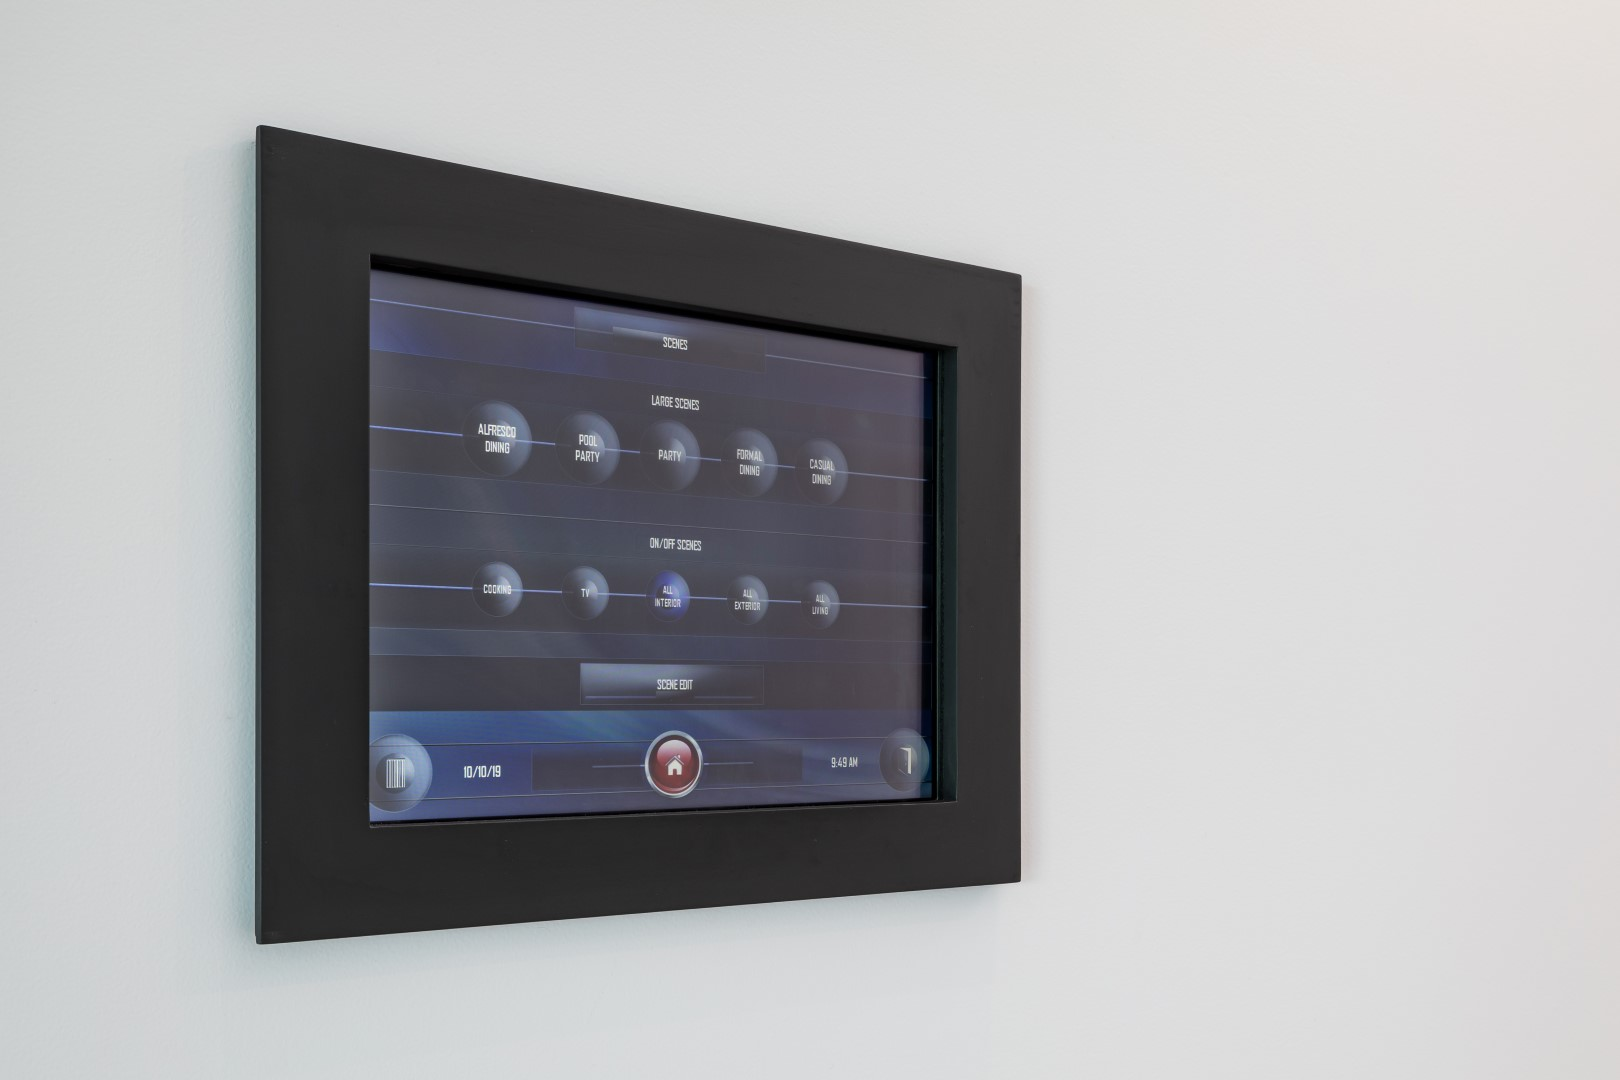 home-automation-system-arcline-architecture-it-design (1)